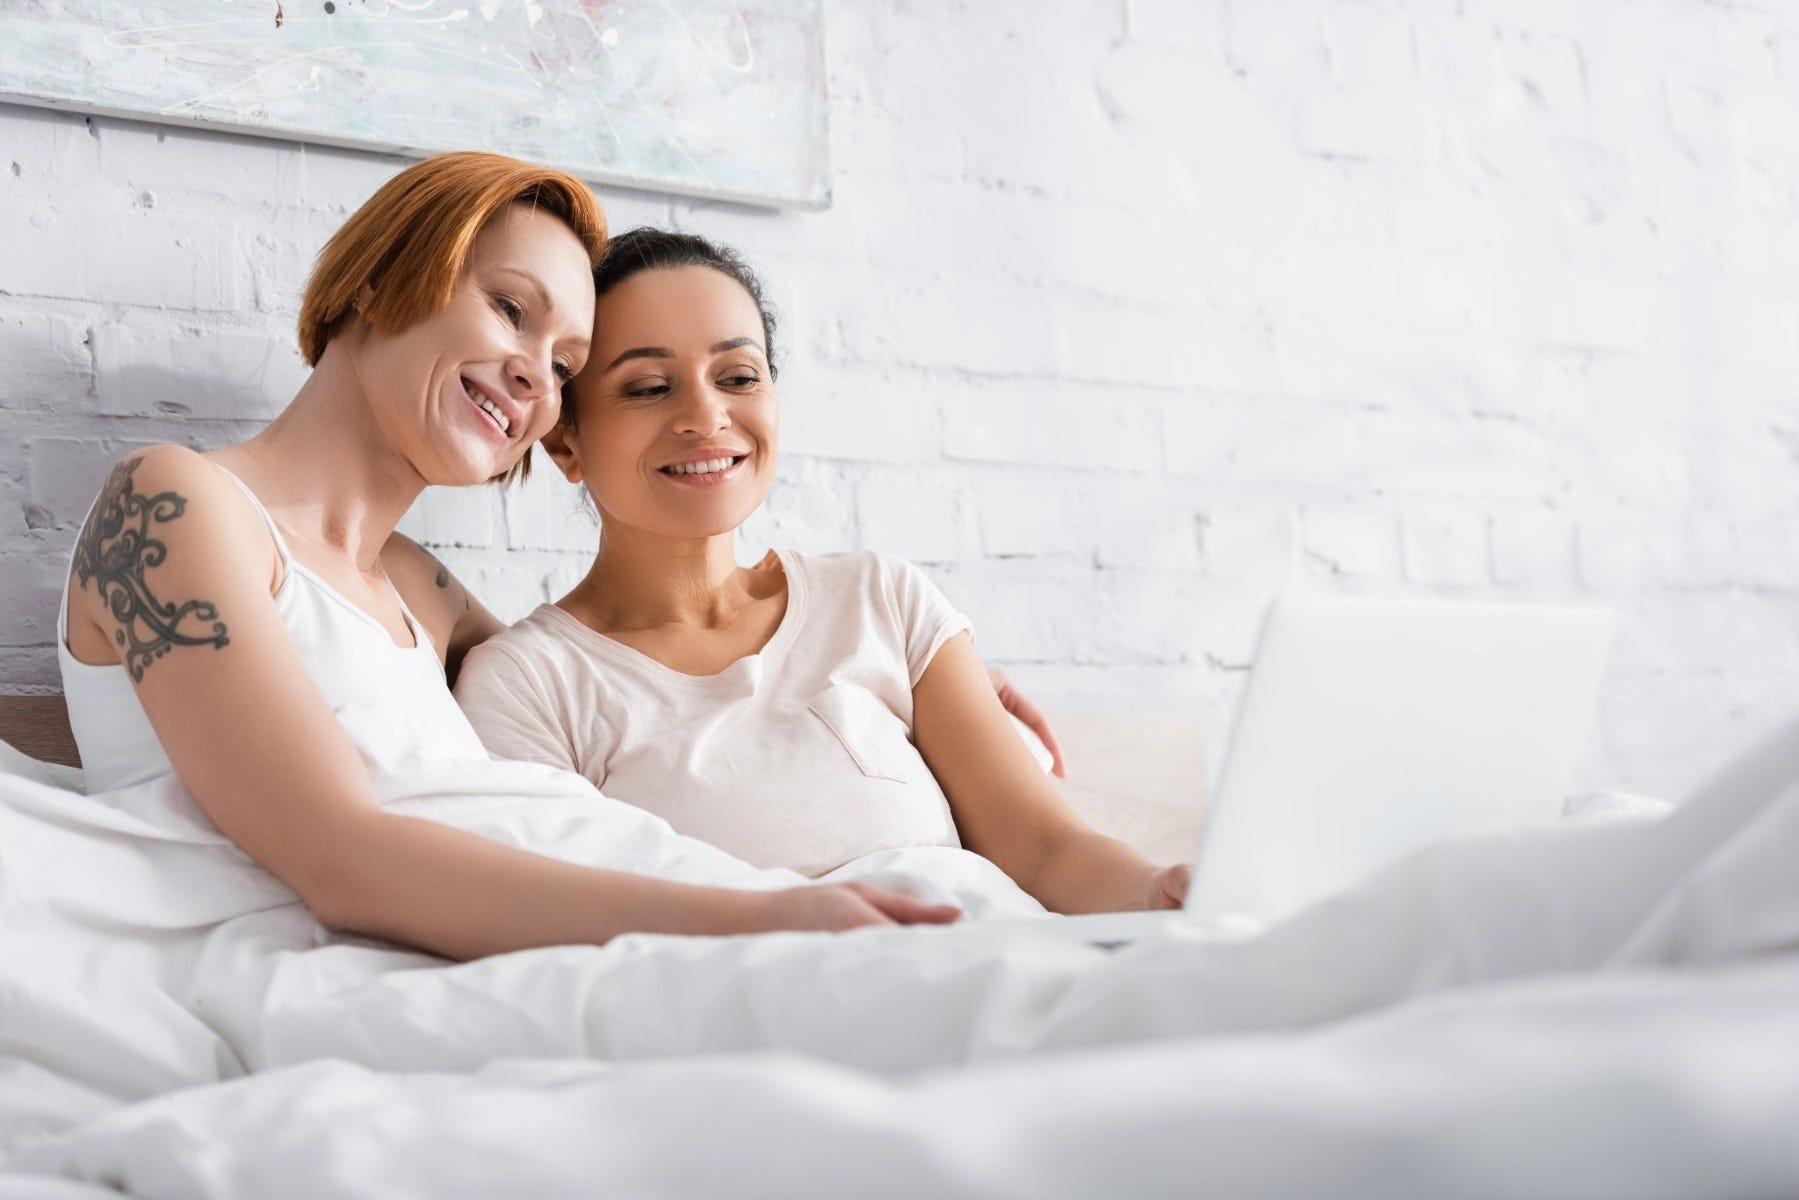 women watching porn on a laptop together in bed